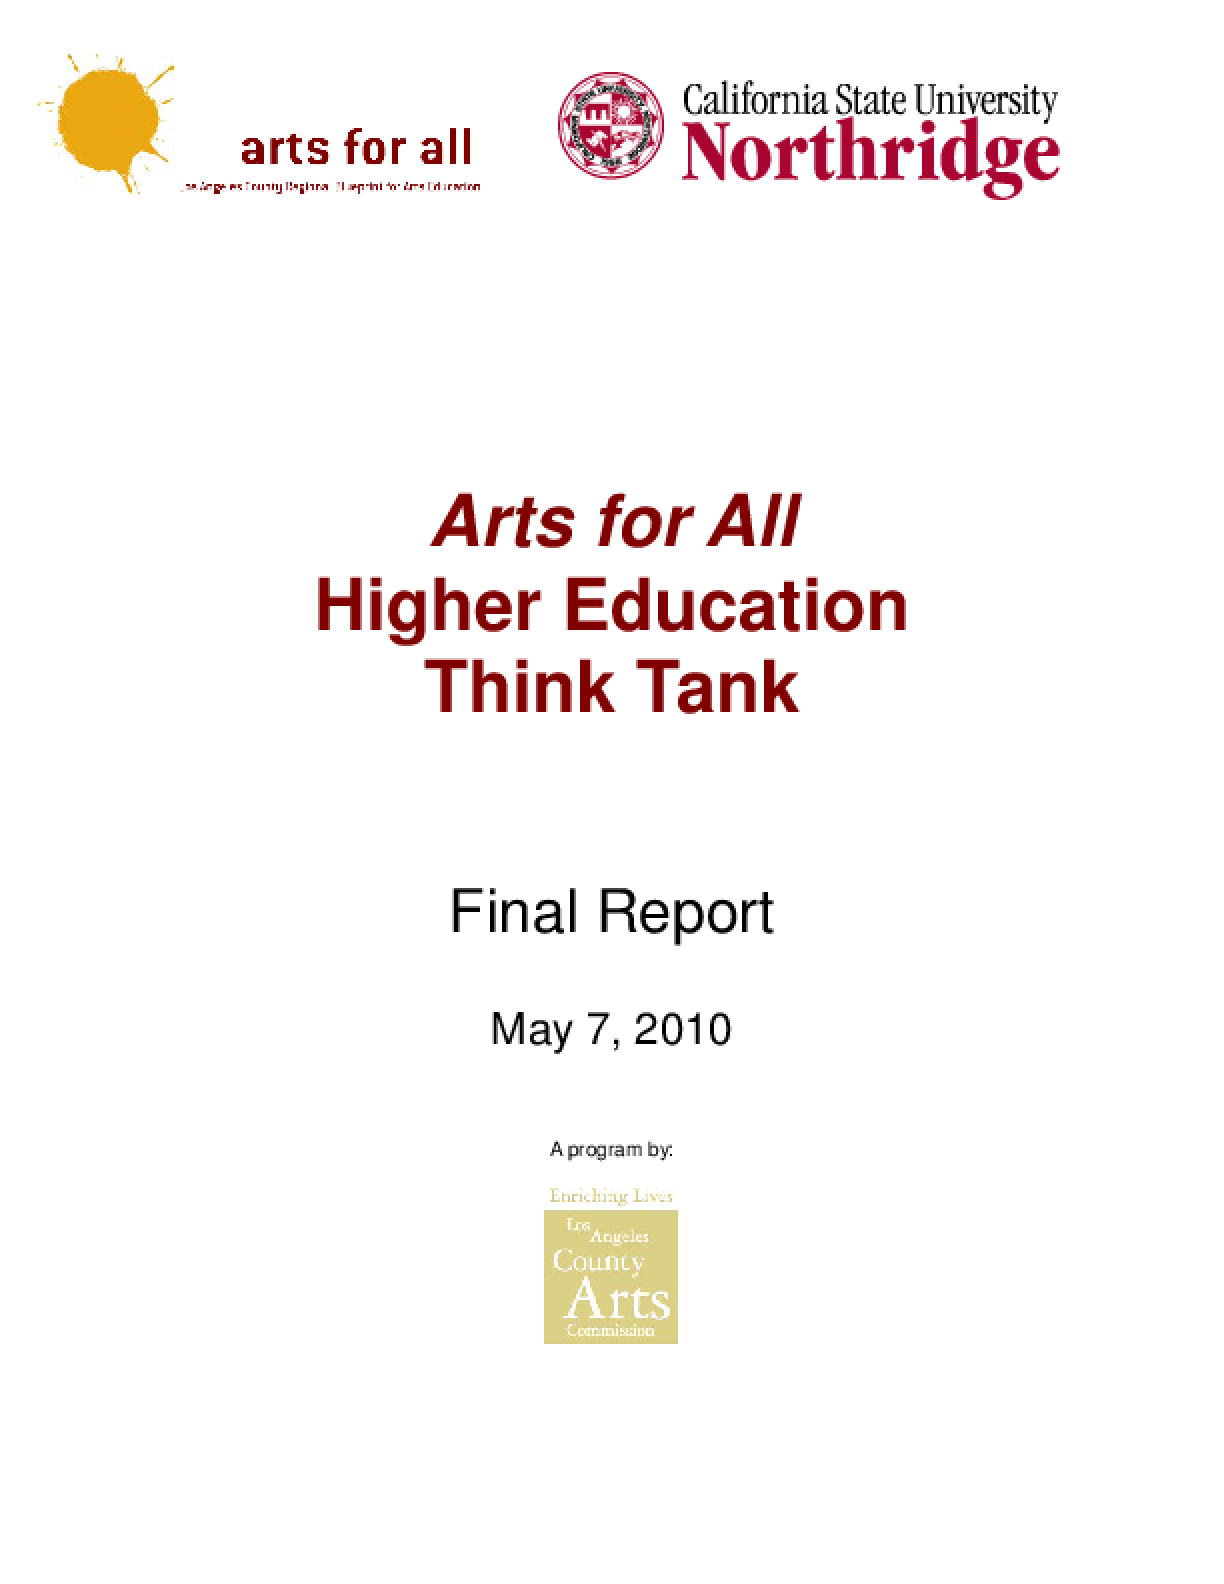 Arts for All Higher Education Think Tank